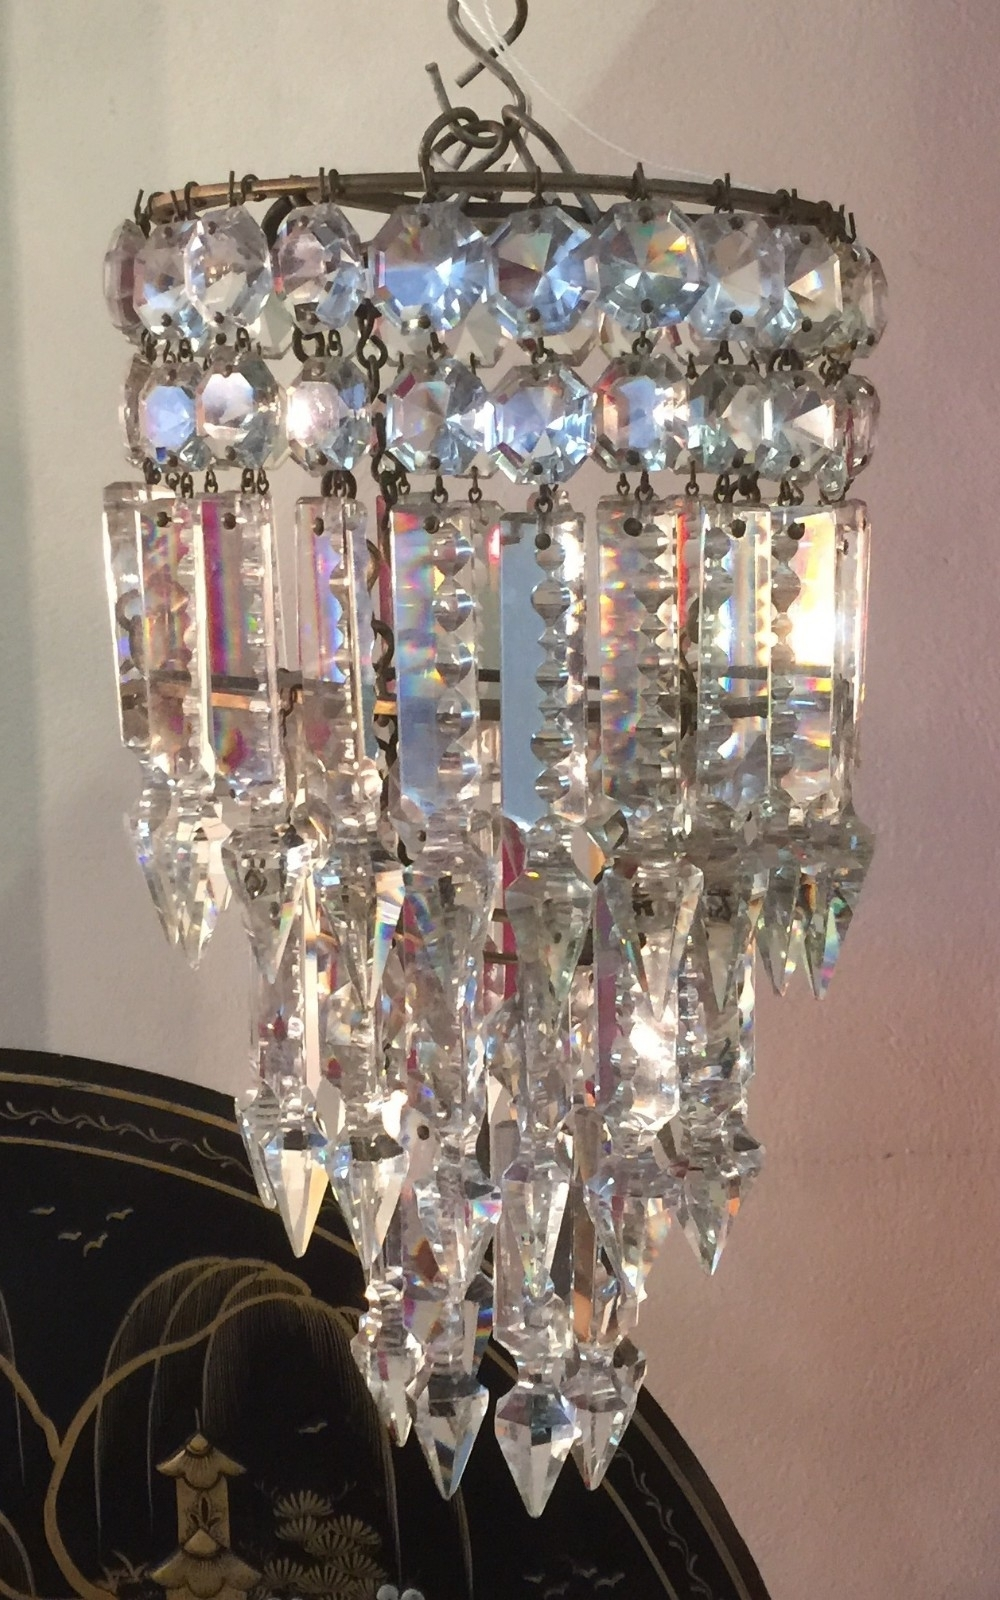 Favorite Cut Glass Lead Crystal 3 Tier Pendant Chandelier (View 15 of 15)